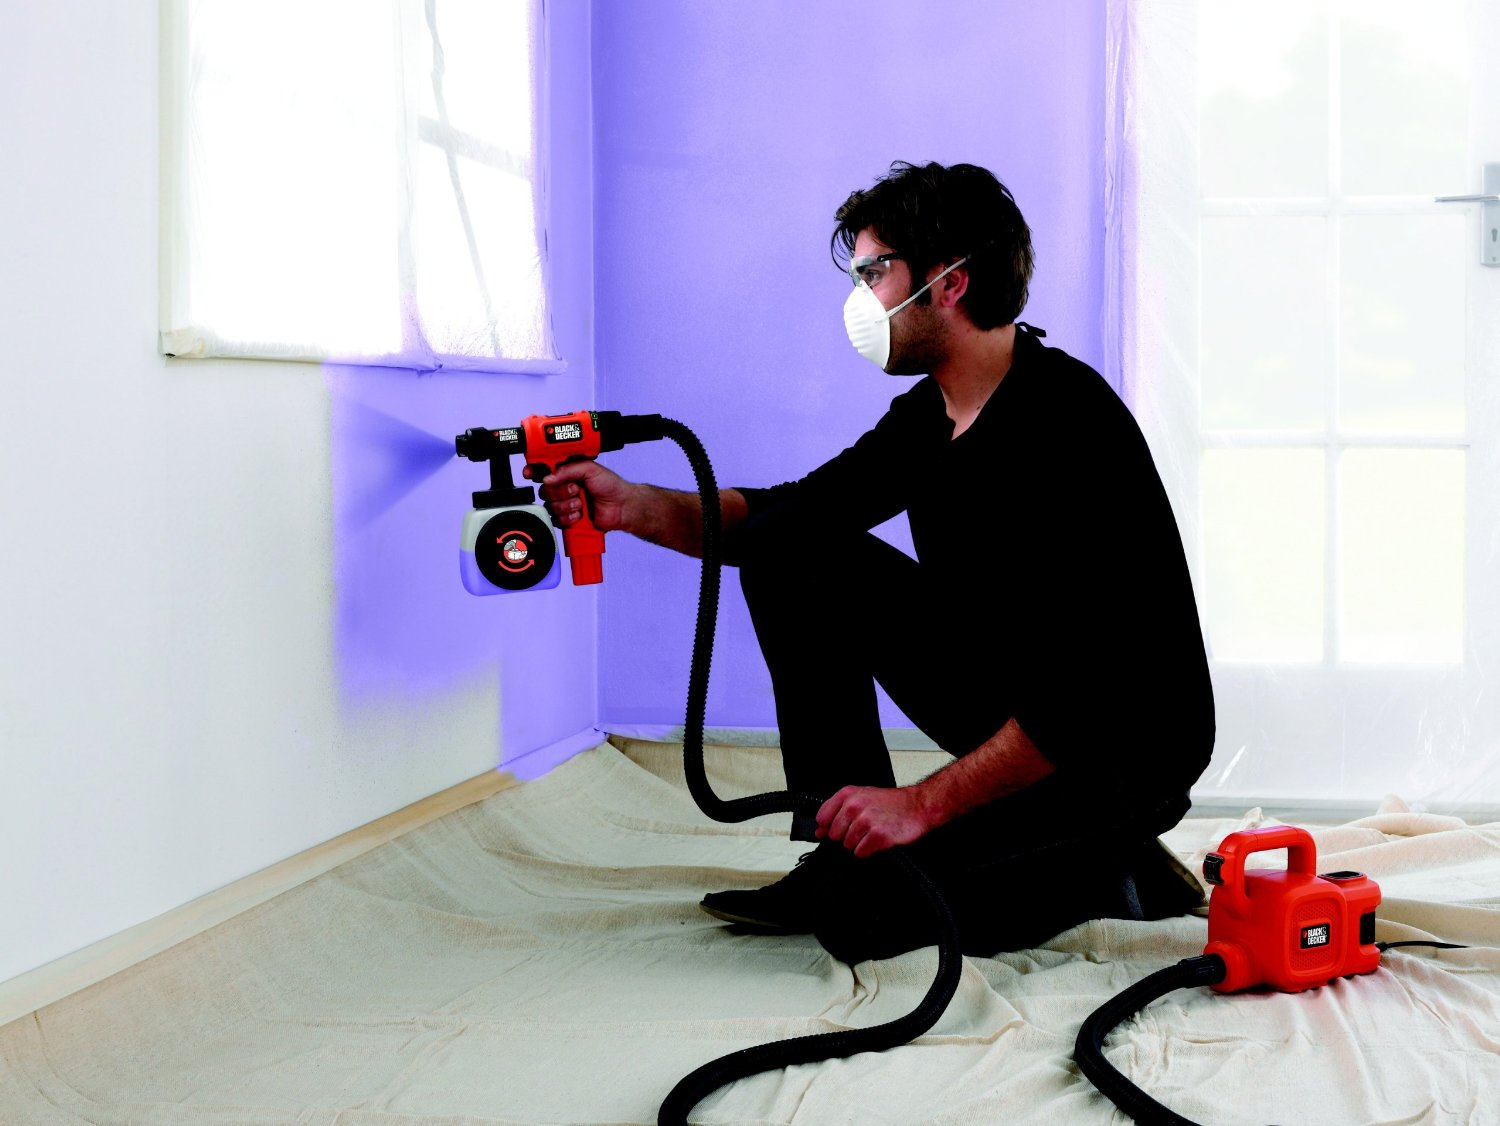 avis test pistolet peinture black decker hvlp400 outils et bricolage. Black Bedroom Furniture Sets. Home Design Ideas